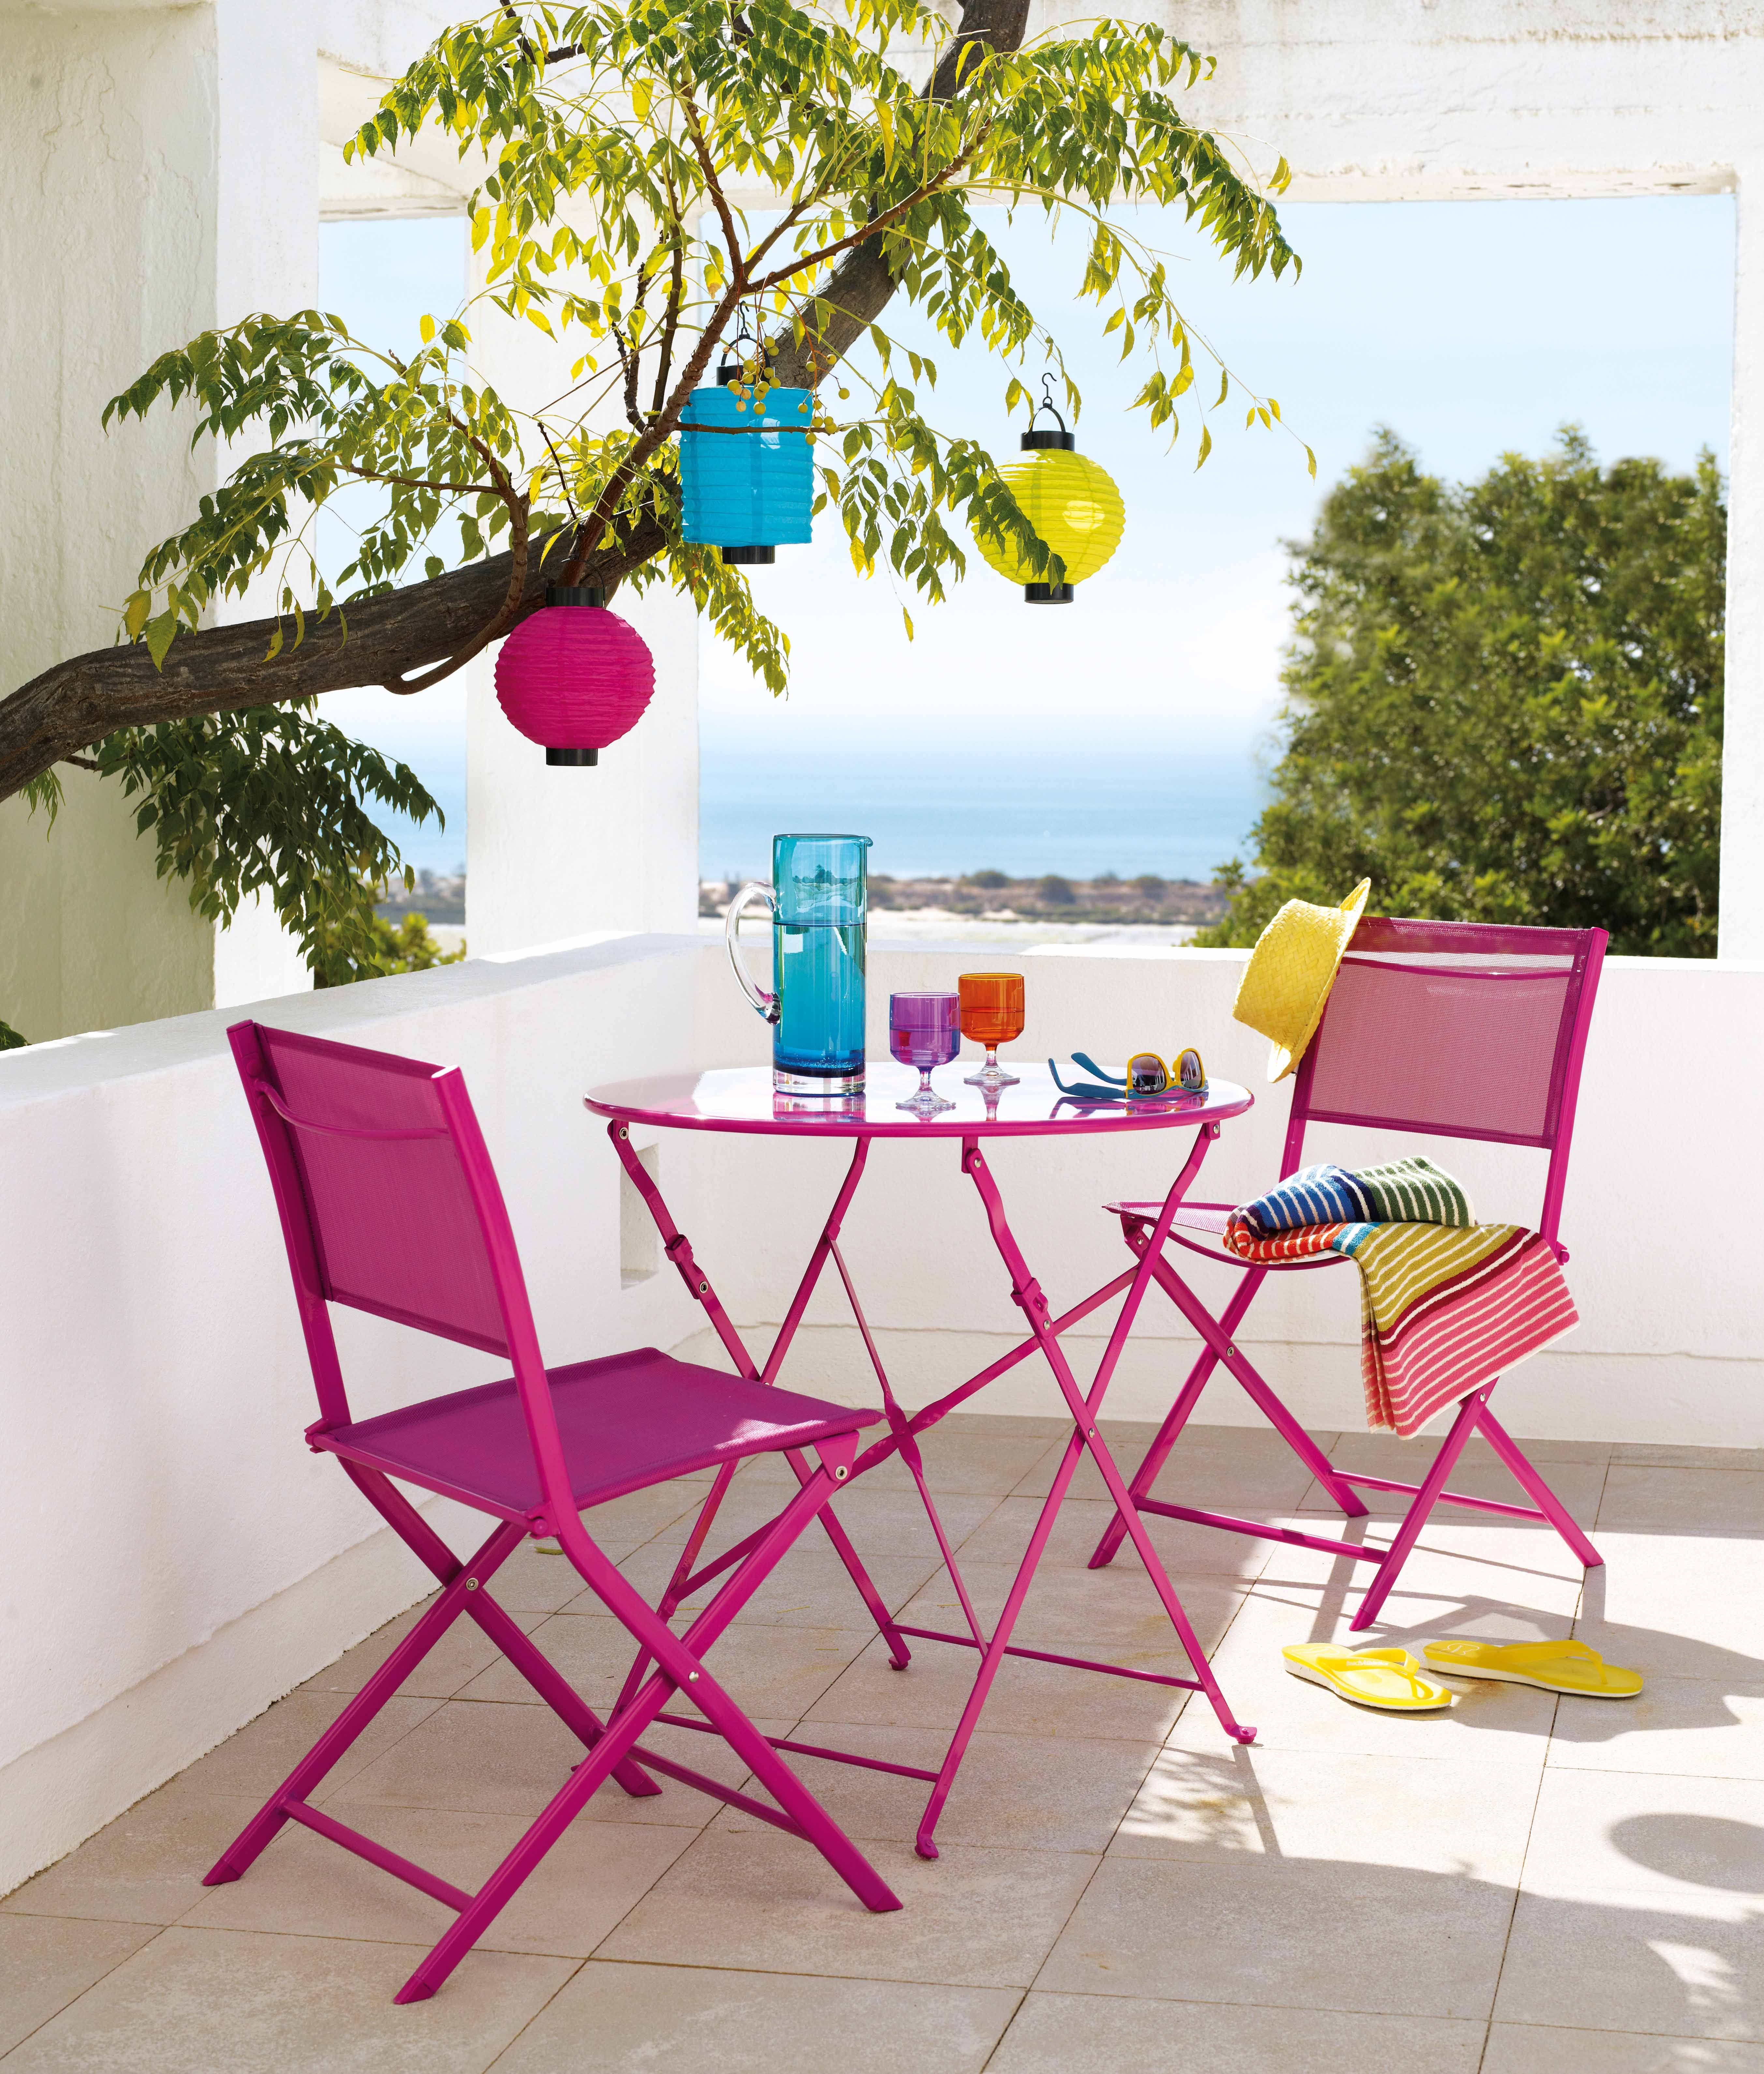 Blooma Garden Furniture The blooma saba bistro table and folding chairs is not only perfect the blooma saba bistro table and folding chairs is not only perfect for small spaces it provides an instant makeover to your garden with its sizzling workwithnaturefo